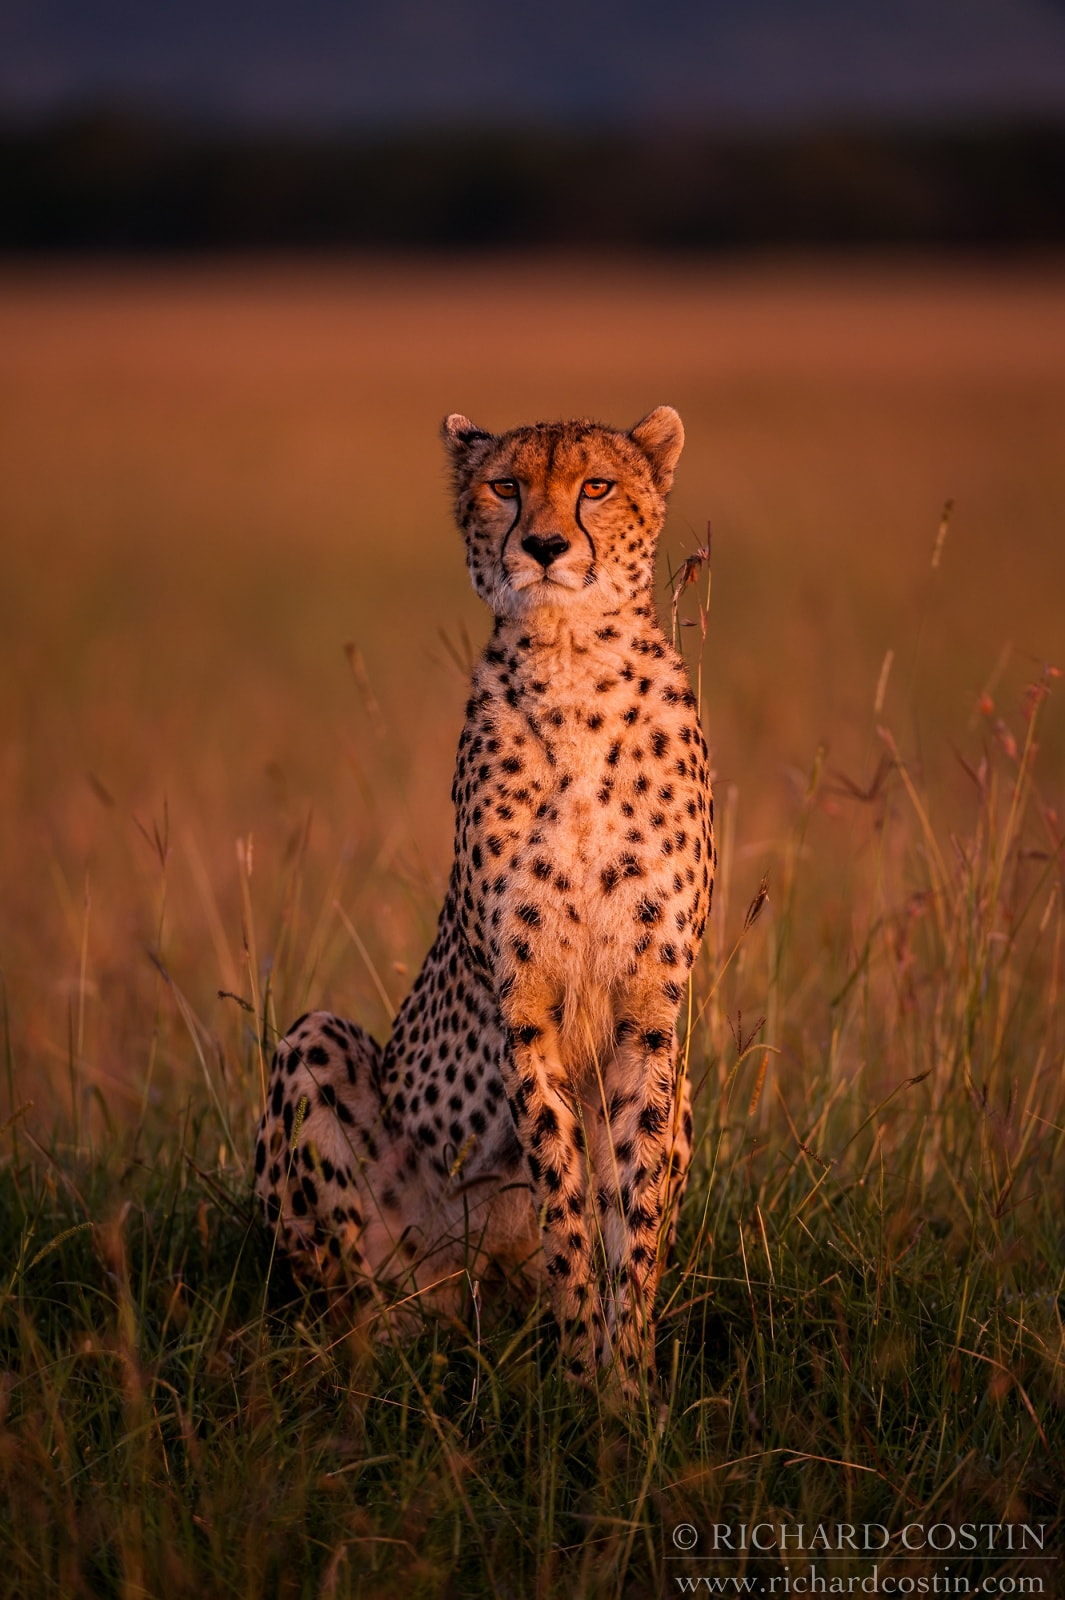 Cheetah image, taken on a wildlife photography workshop run in the Masai Mara, Kenya, Africa.